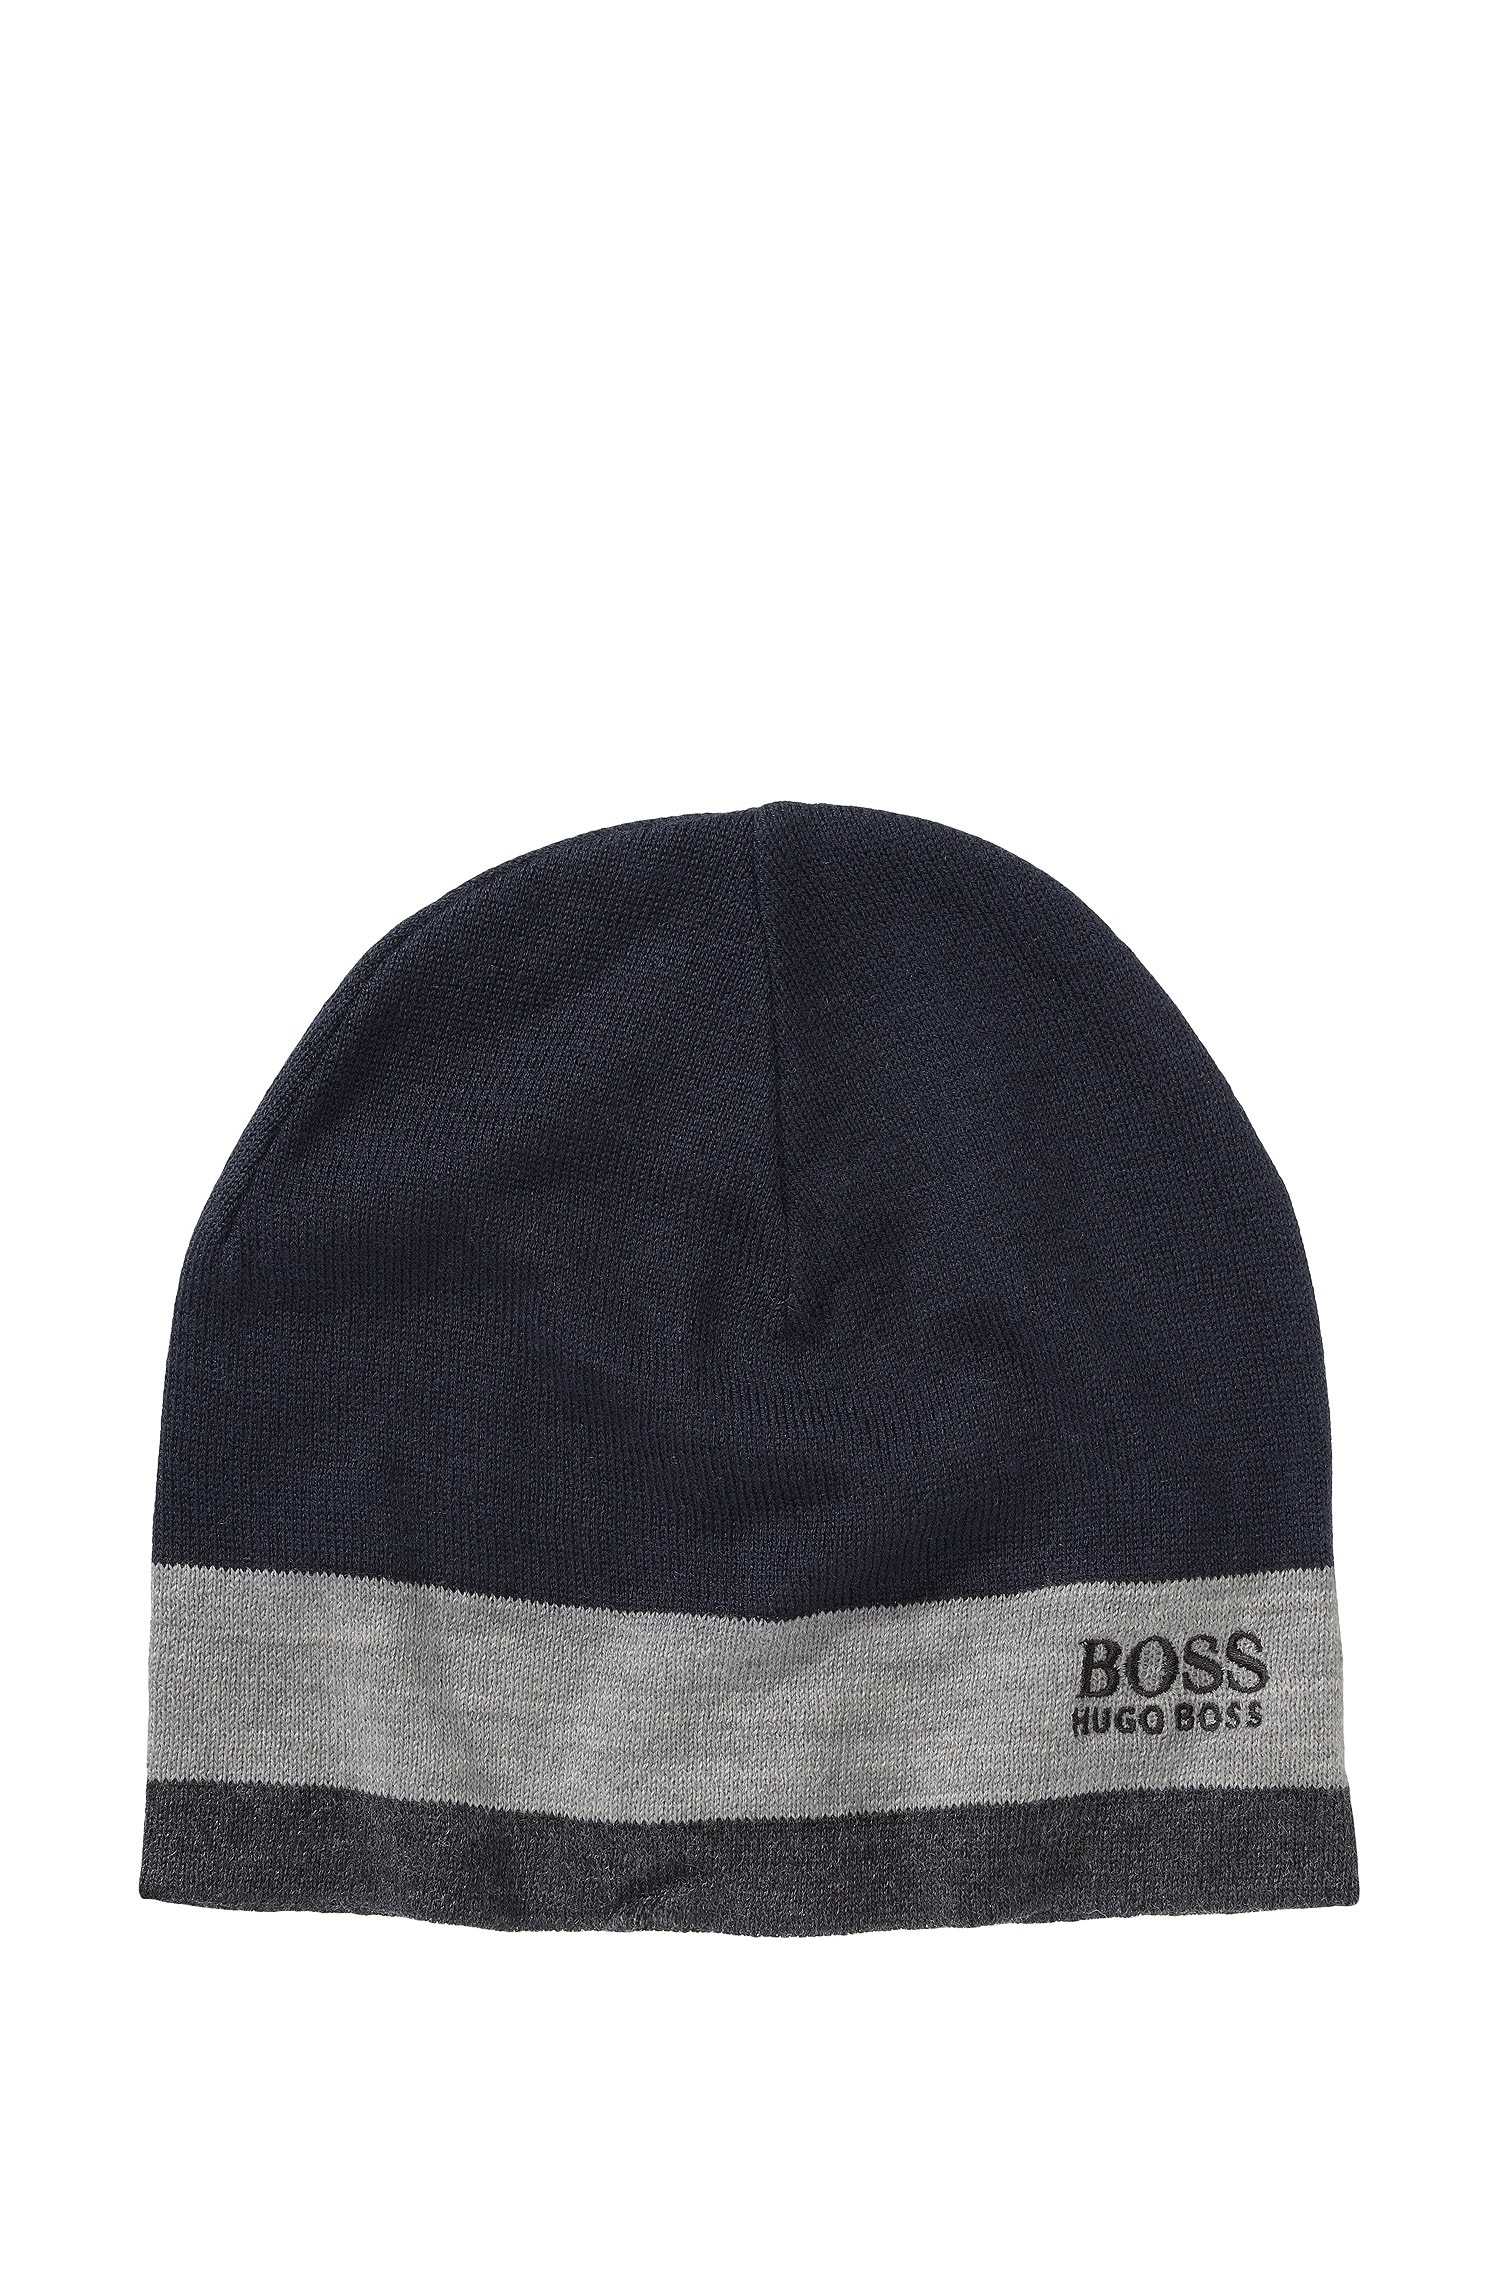 7be621abc0b Boss Green Hat  Ciny  In New Wool Blend in Blue for Men - Lyst